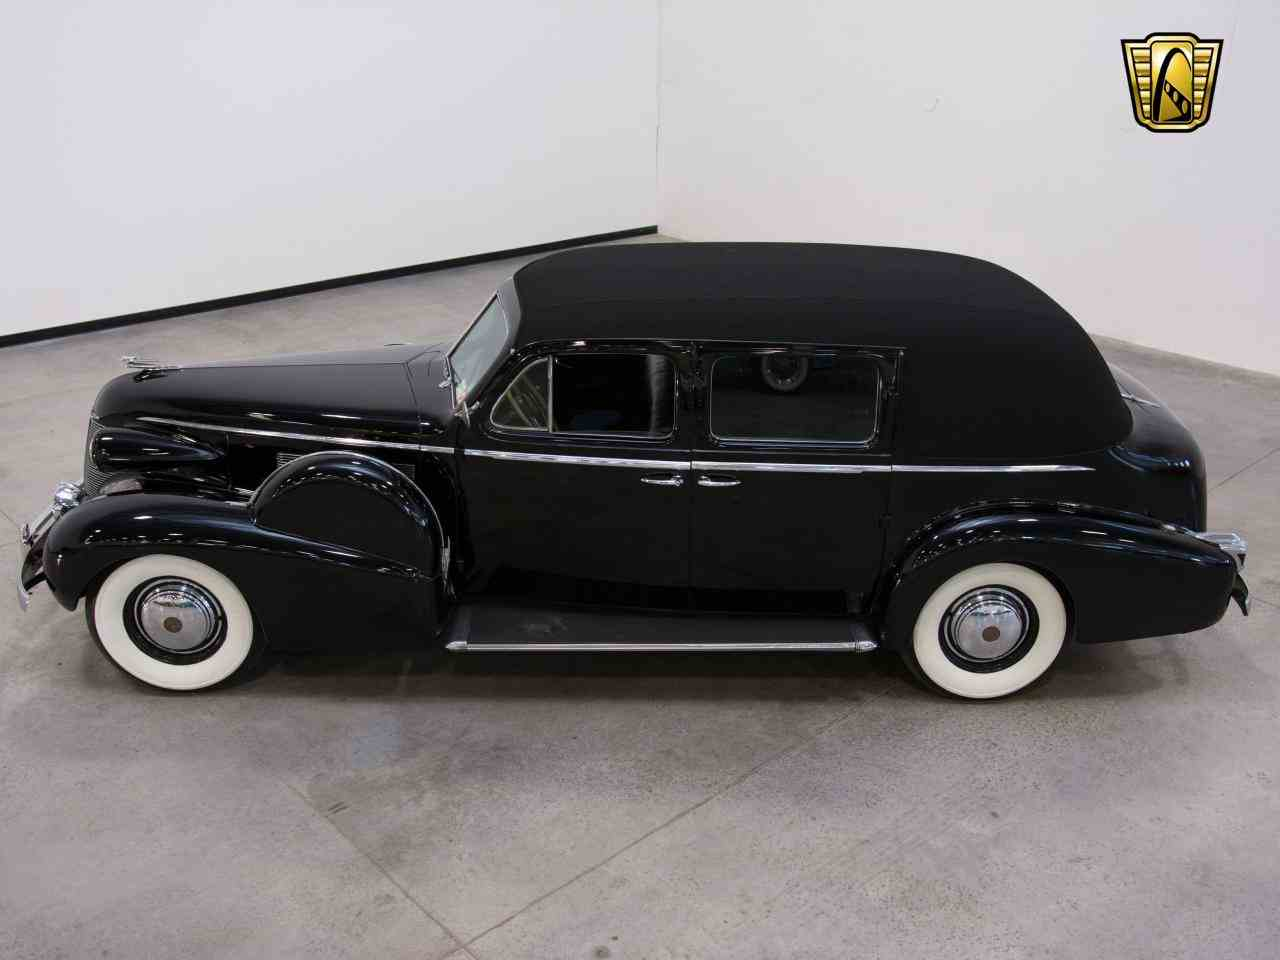 Large Picture of '39 Cadillac 7 Passenger Touring W/ Trunk - KHP0